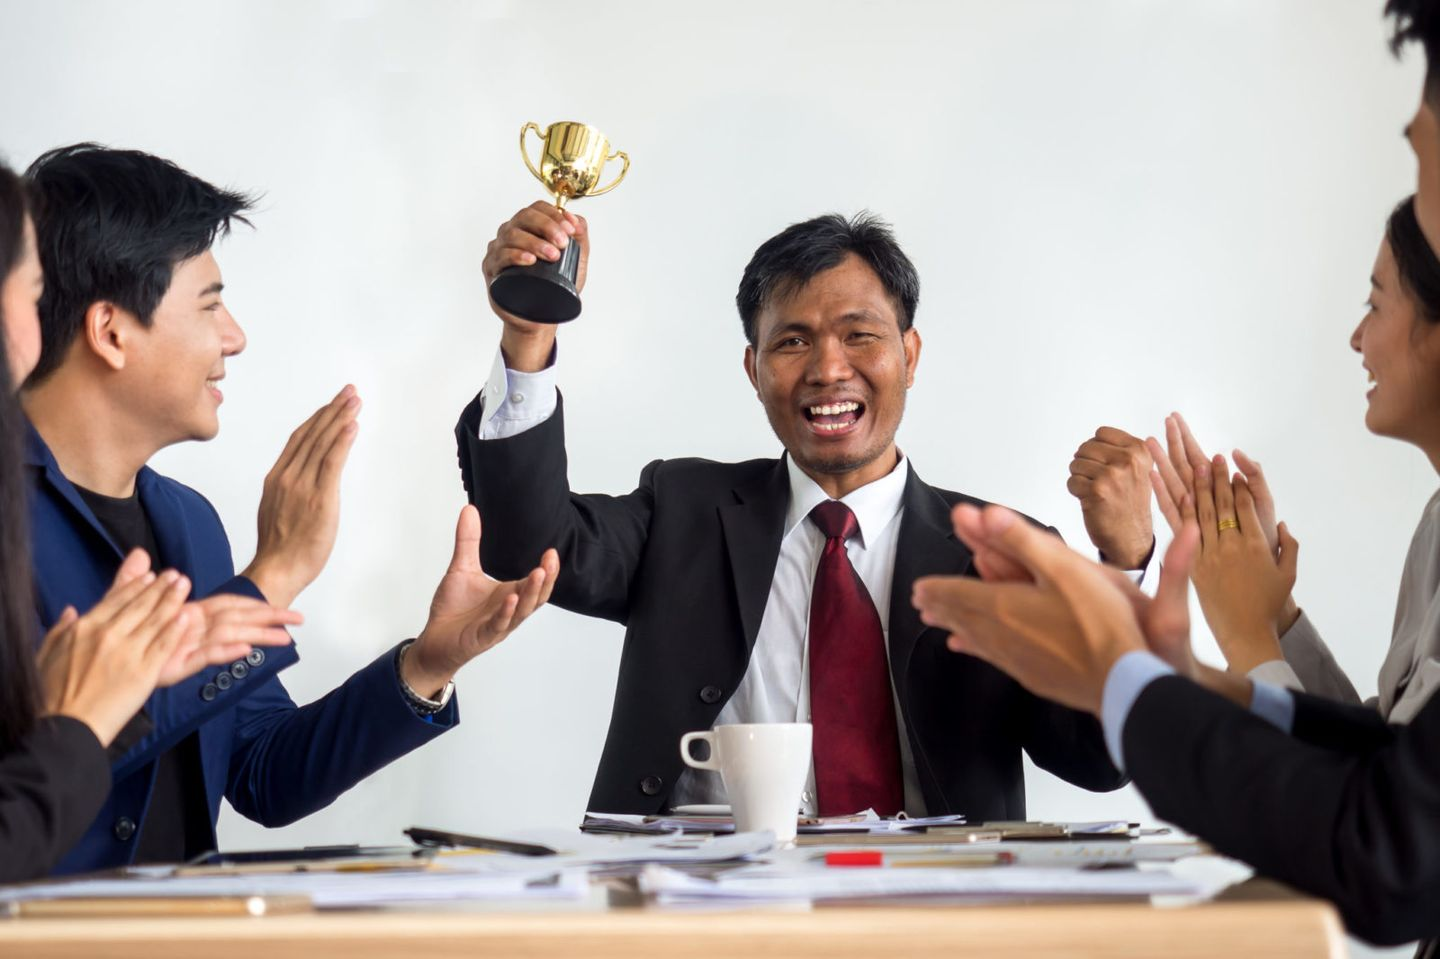 Businessman clapping hands with trophy reward winner champion and successful for business